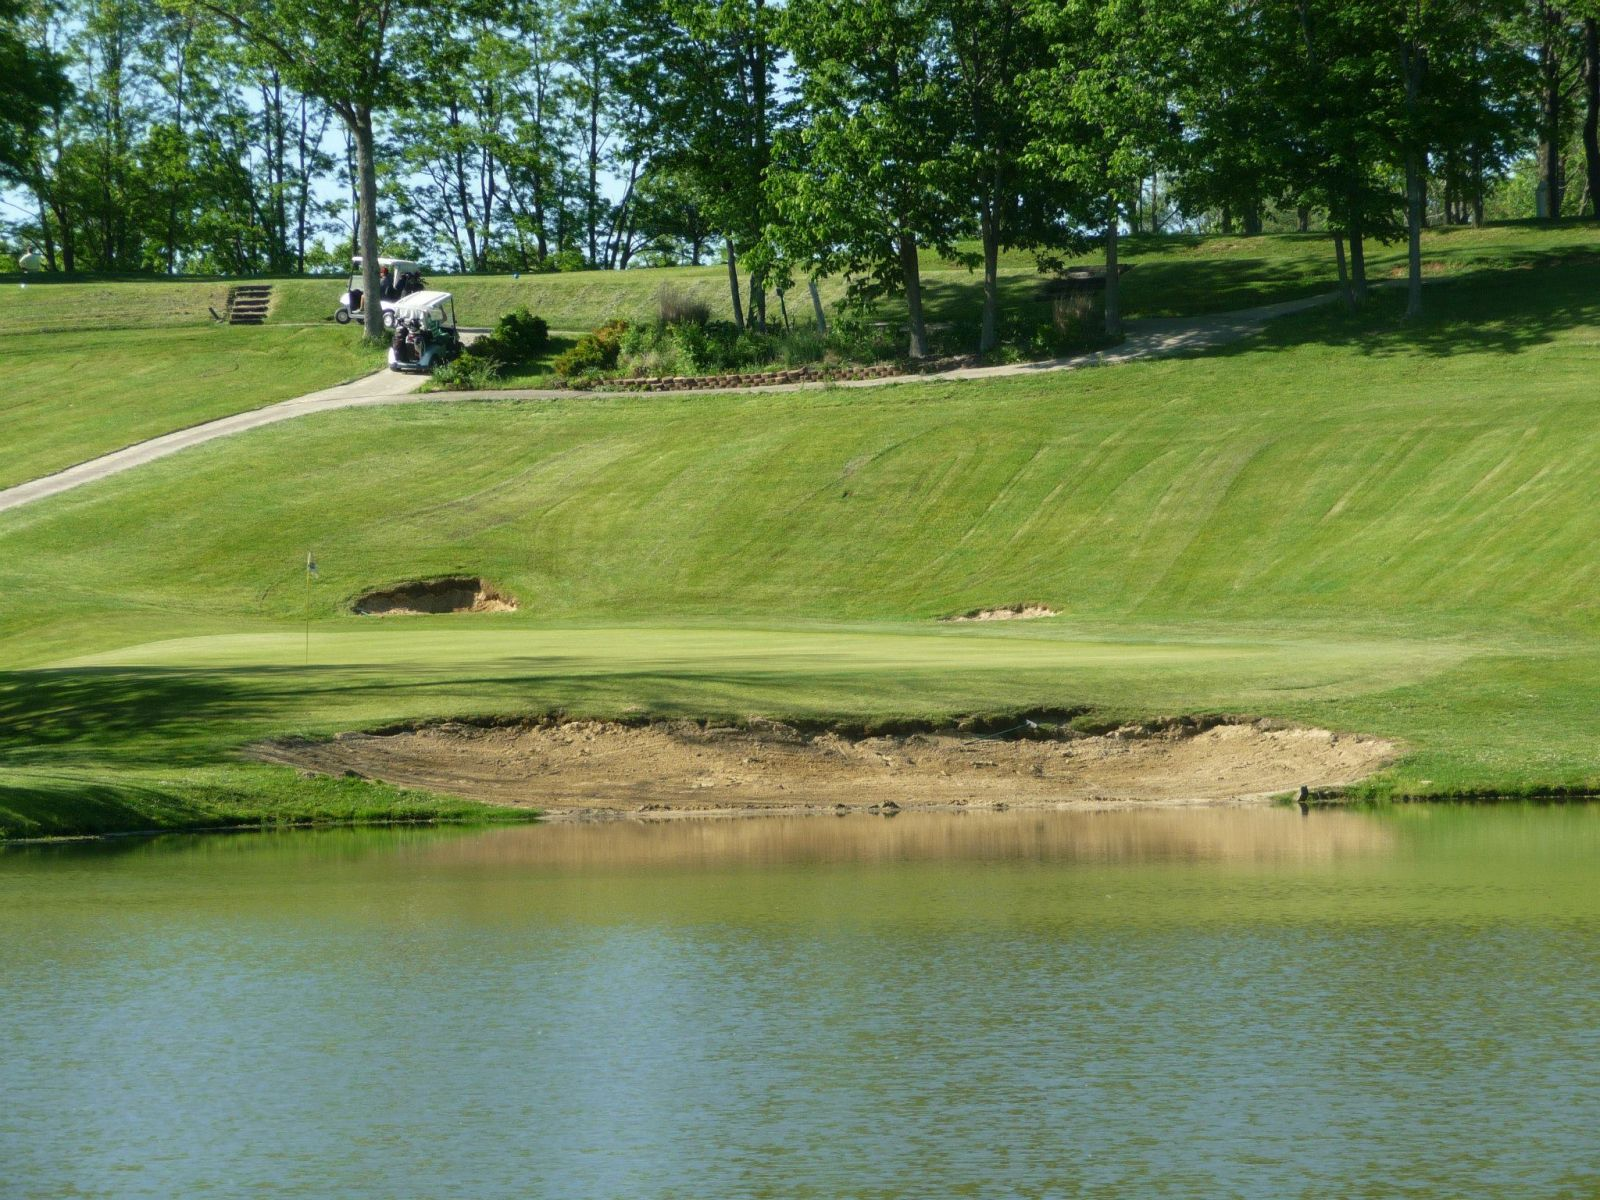 View of a pond on the course at Beech Creek